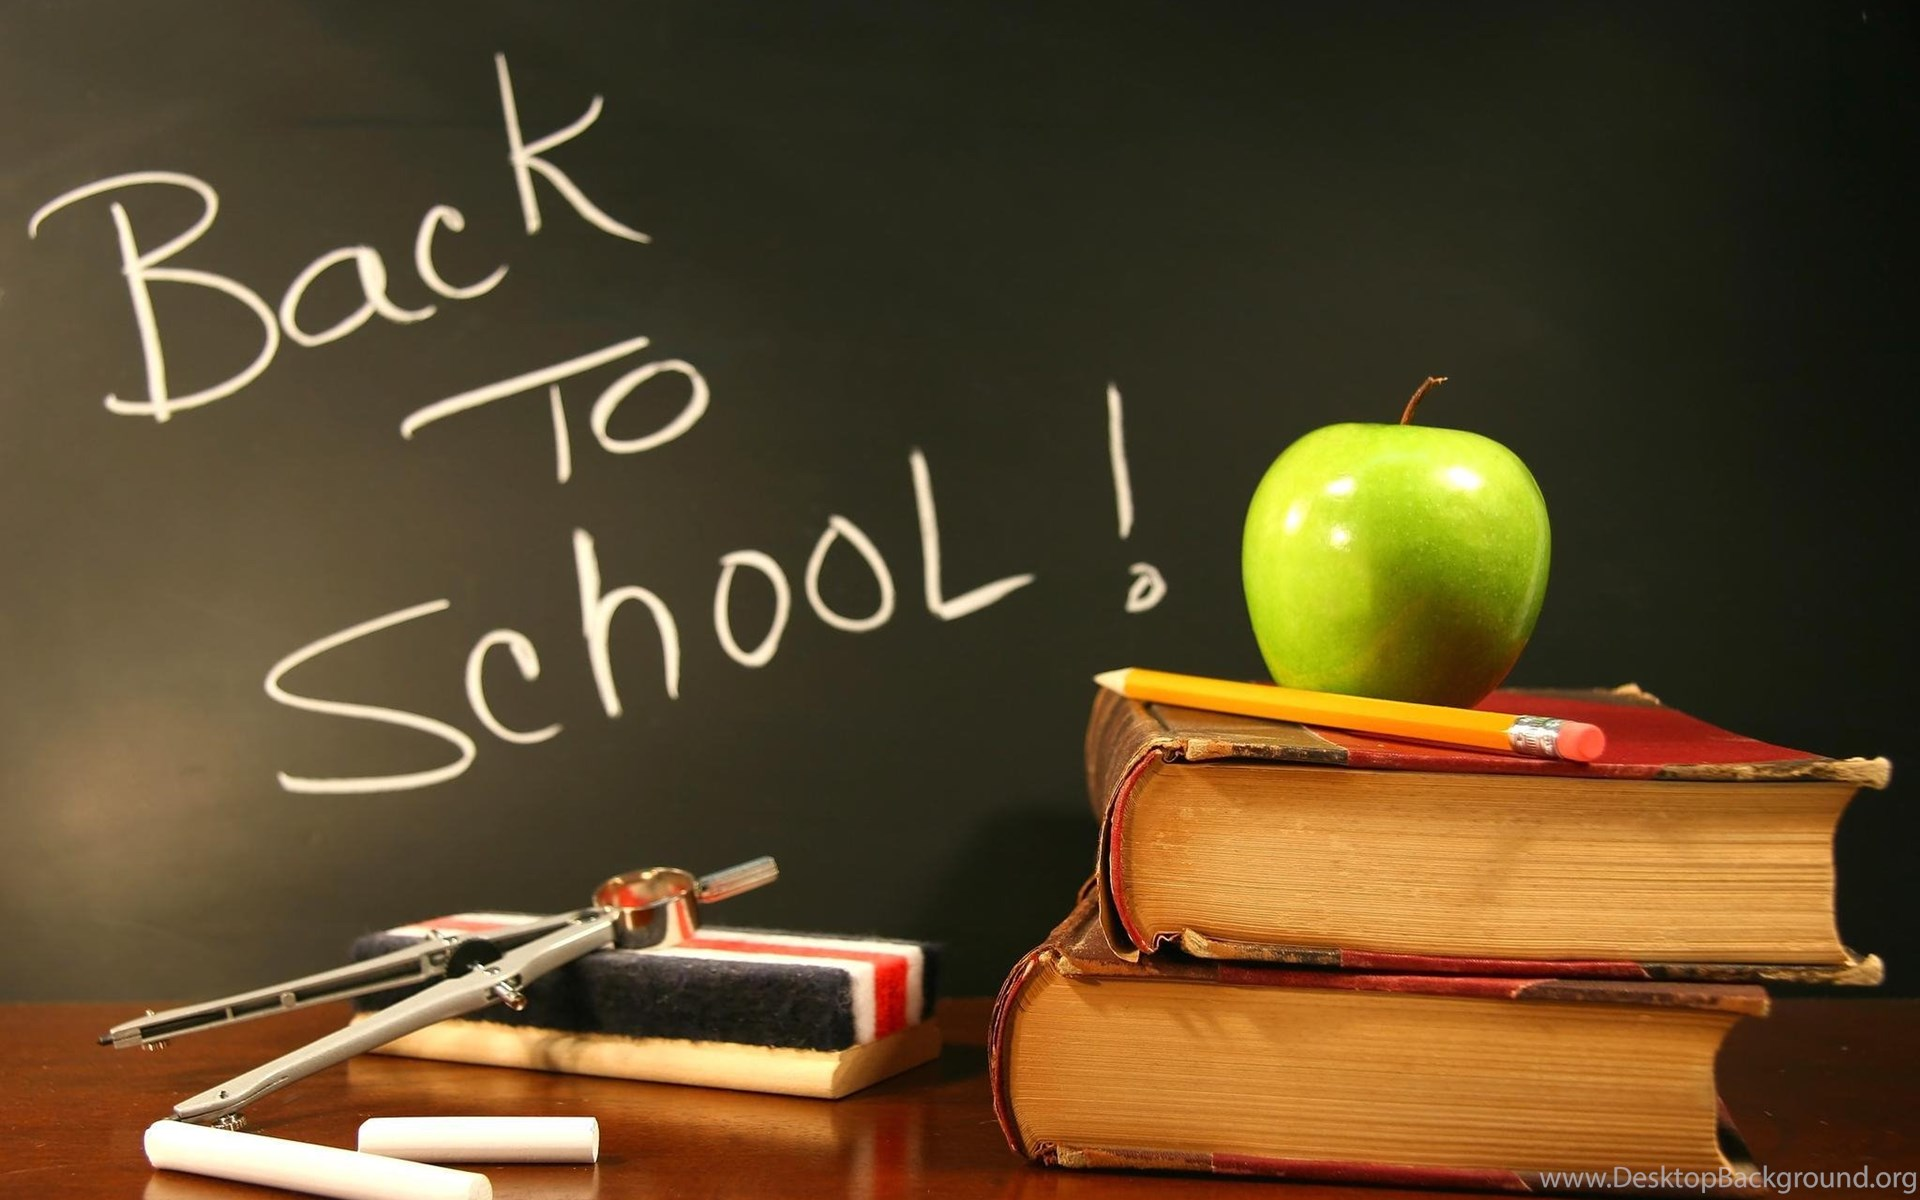 Back To School HD Wallpapers Pictures Images Photos Desktop 1920x1200